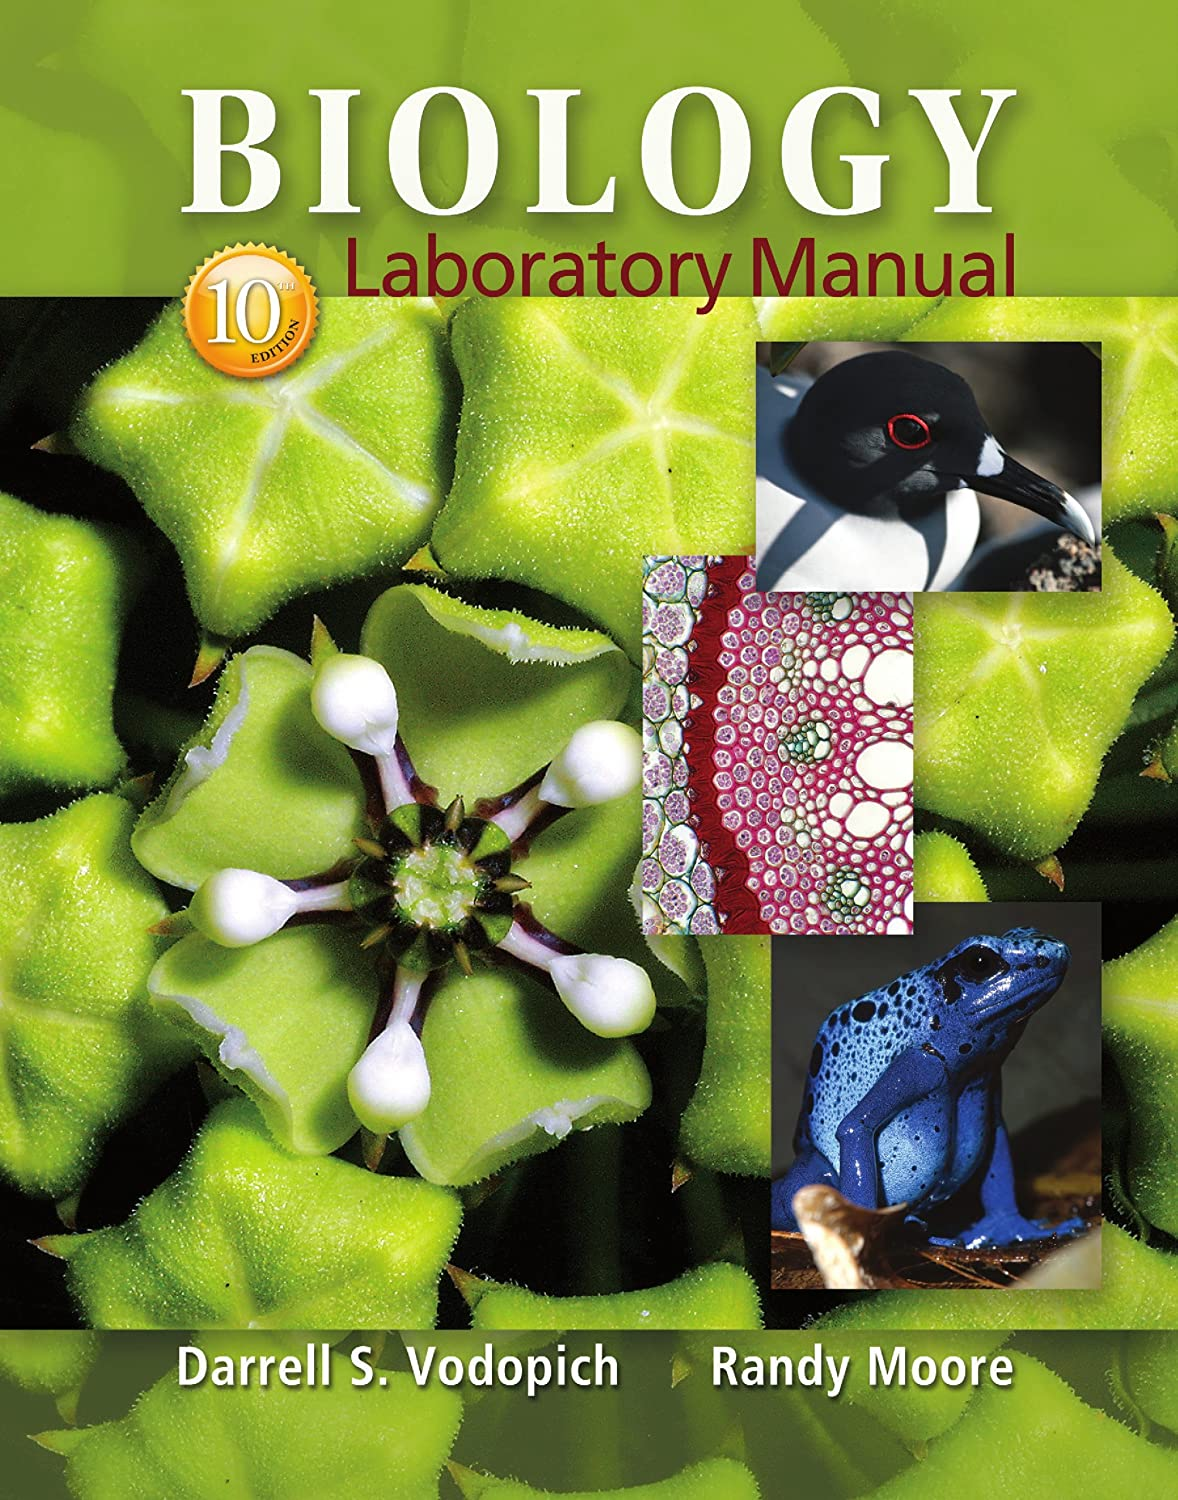 writing papers in the biological sciences 5th edition online book Research and documentation online, 5th edition cse (council of science editors), formerly cbe (council of  book with edition, organization as author, style manual committee,  the council writing papers in the biological sciences (5th ed) boston, ma: bedford/st pdf format is not acceptable for the source file of the text of the.